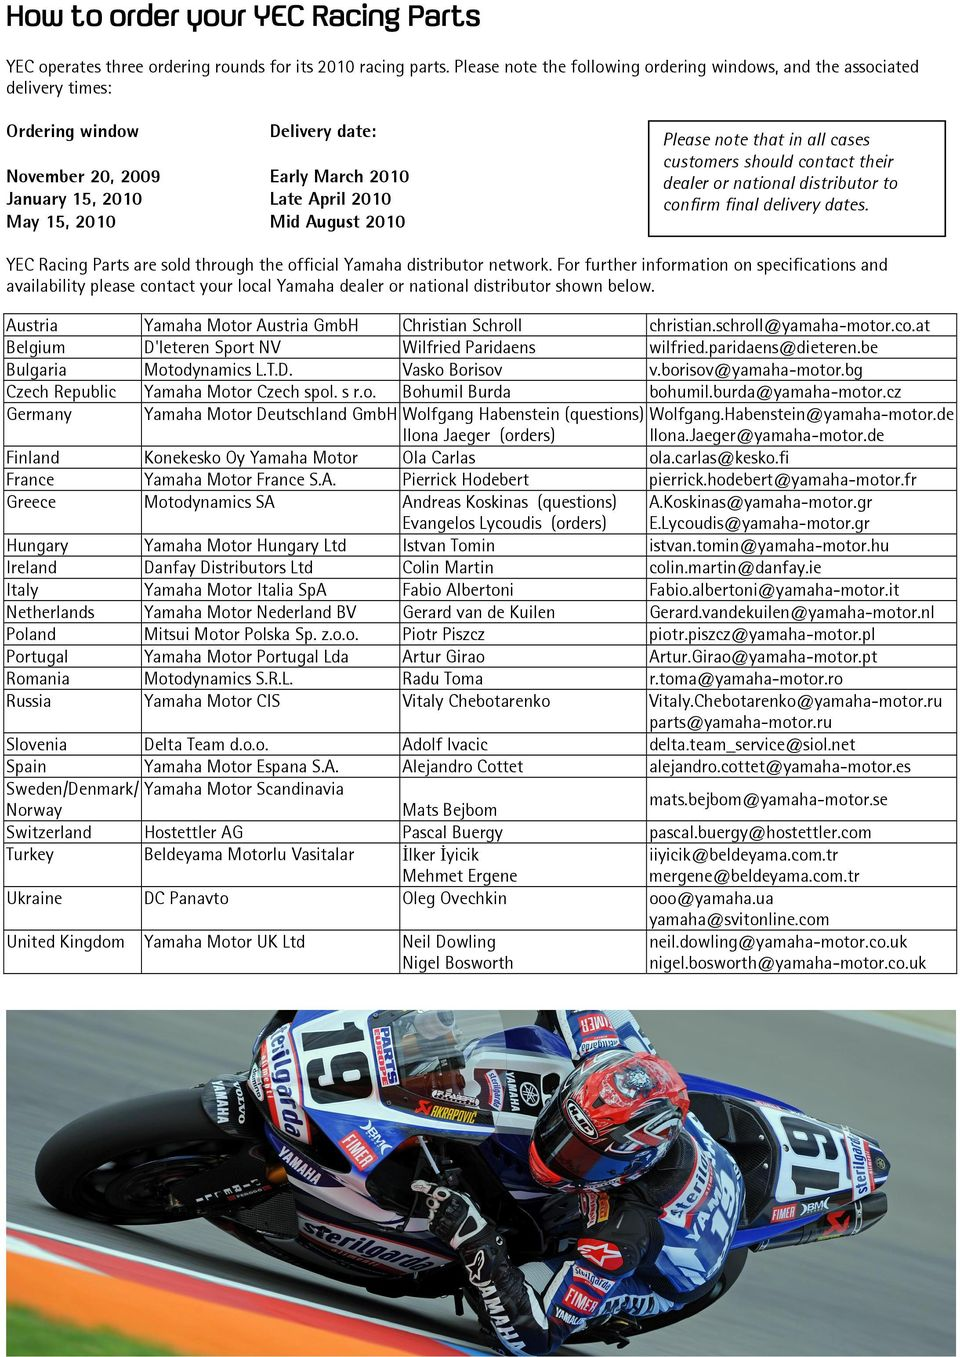 Racing Parts 2010 Yzf R Series Pdf Yamaha R6 Wiring Diagram August Please Note That In All Cases Customers Should Contact Their Dealer Or National Distributor 3